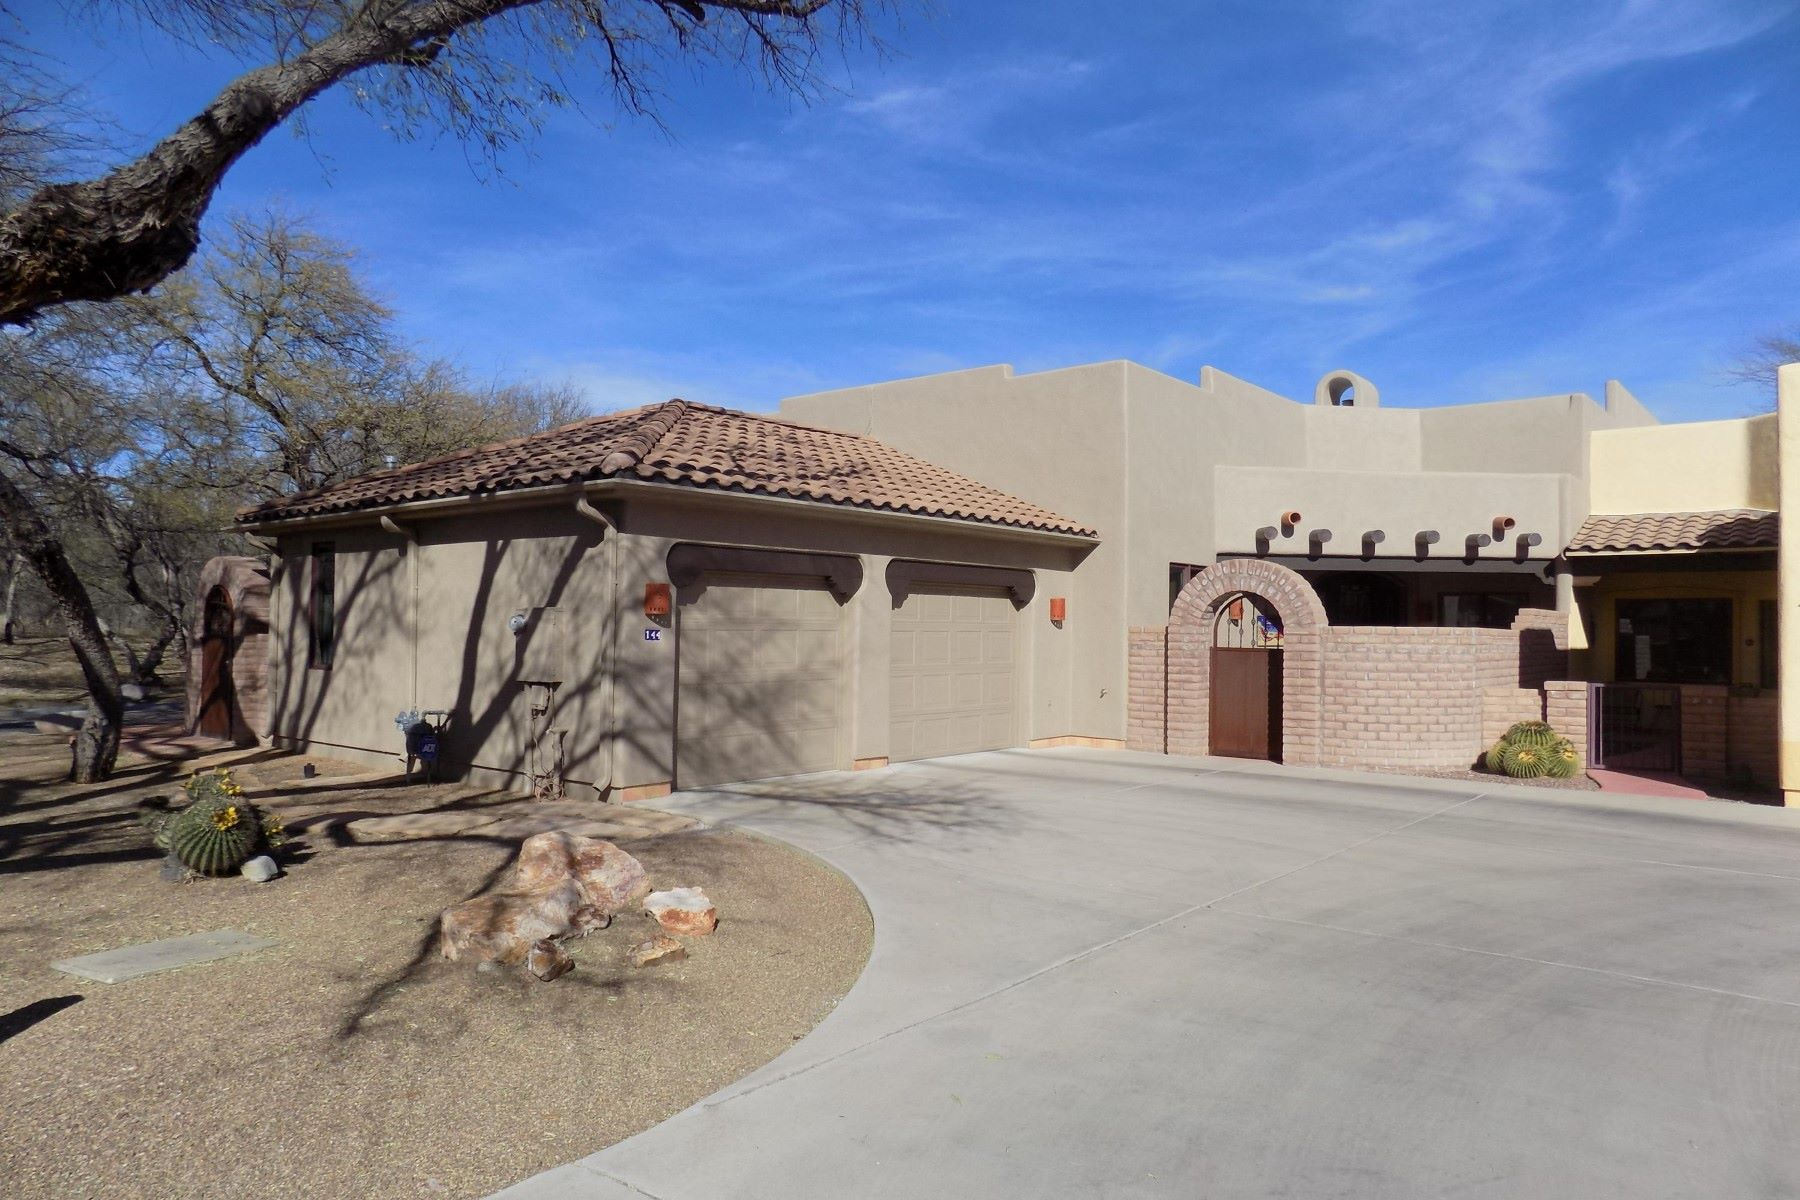 Townhouse for Sale at Beautiful appointed townhome in Santa Cruz 144 Calle Barrio de Tubac Tubac, Arizona, 85646 United States